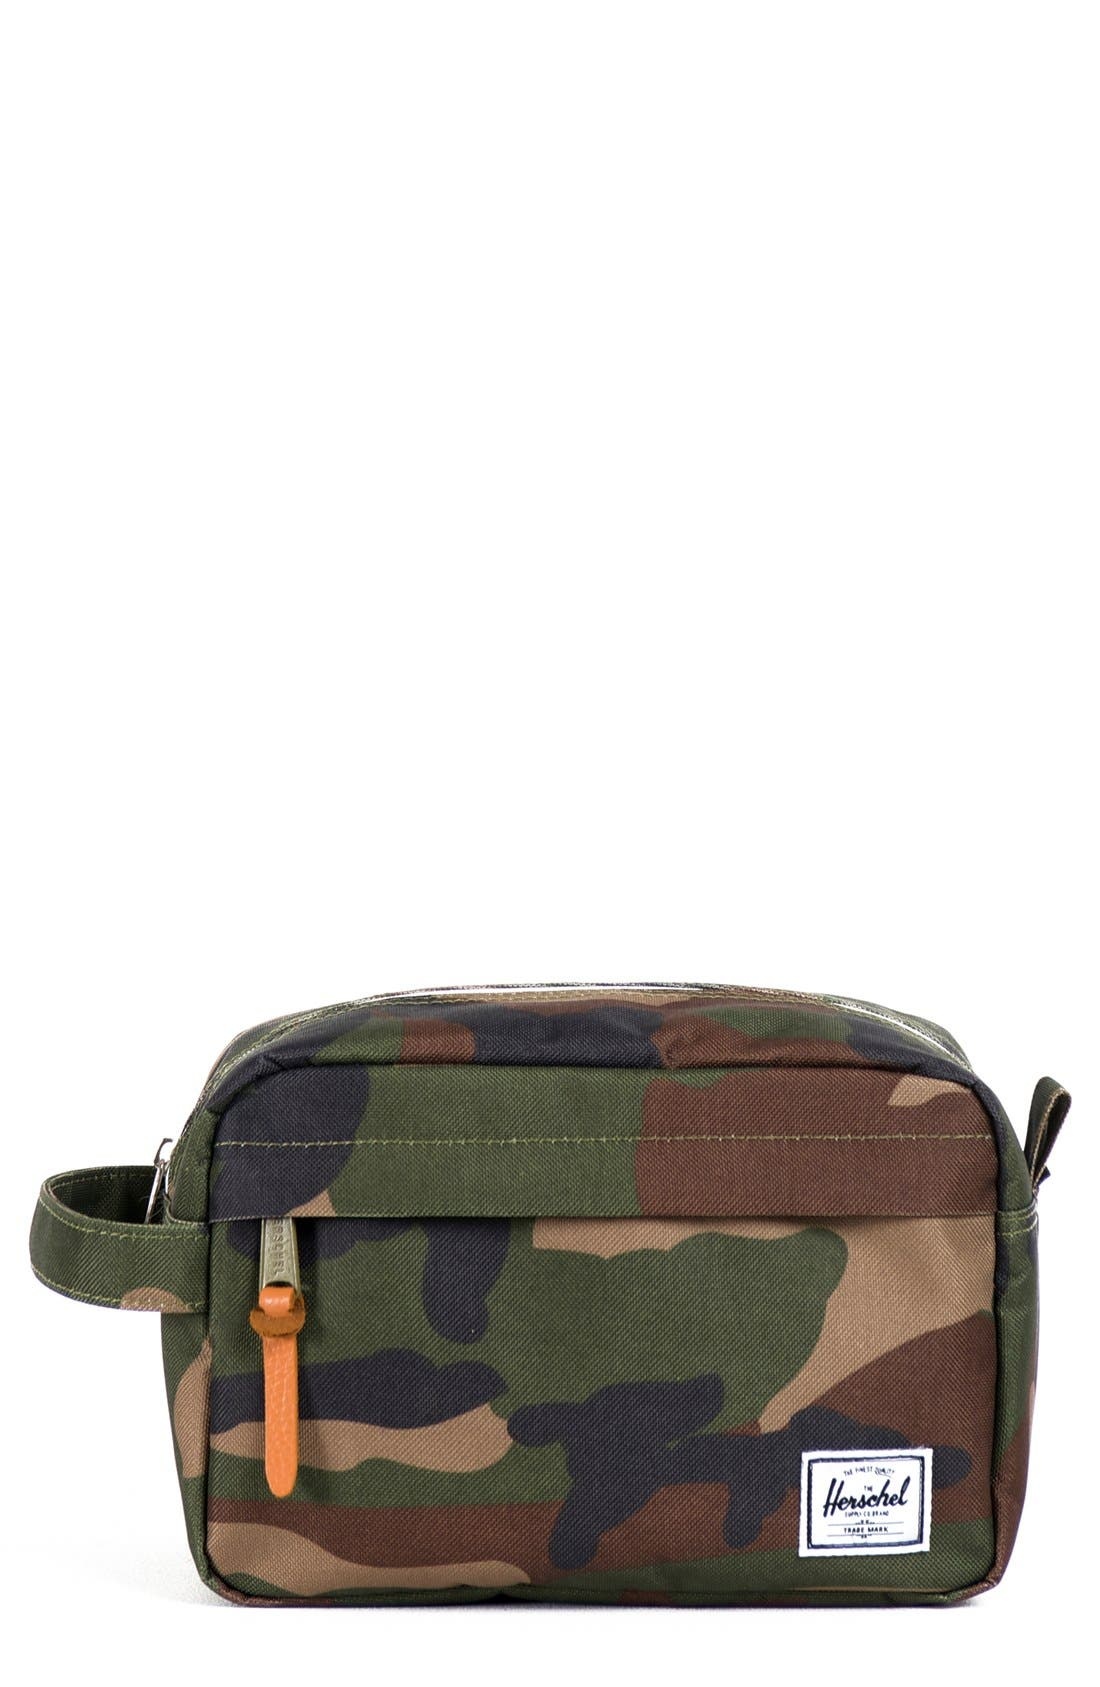 'Chapter' Toiletry Case,                         Main,                         color, WOODLAND CAMO